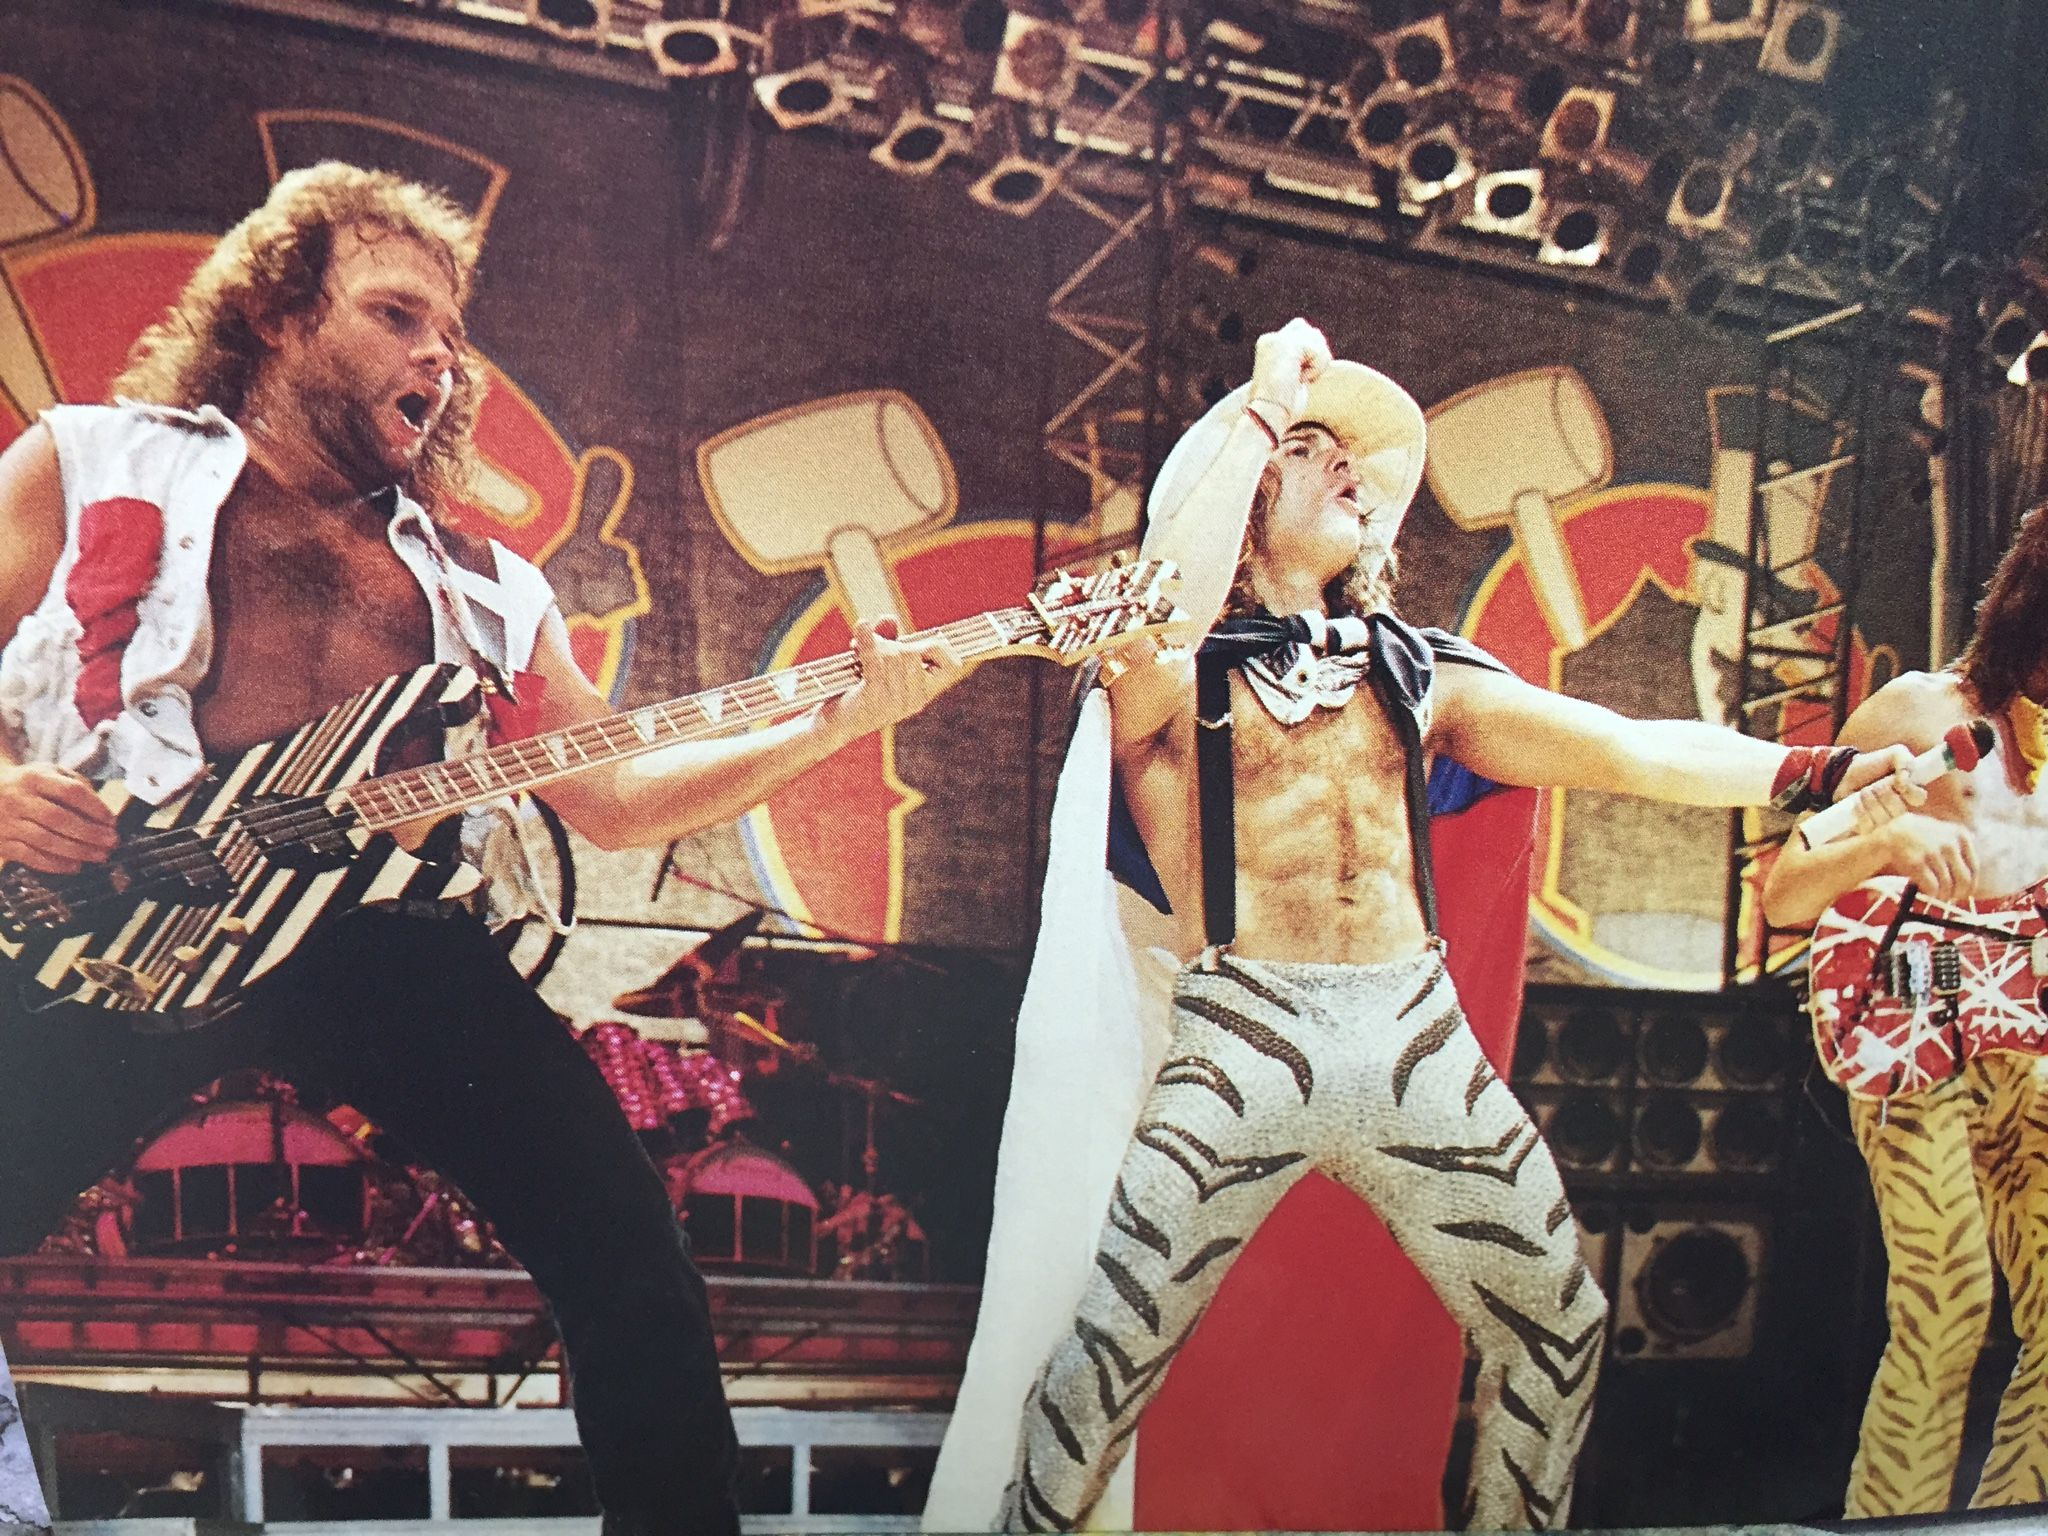 Pin By Andrew Elliott On Van Halen With Images Eddie Van Halen Van Halen David Lee Roth